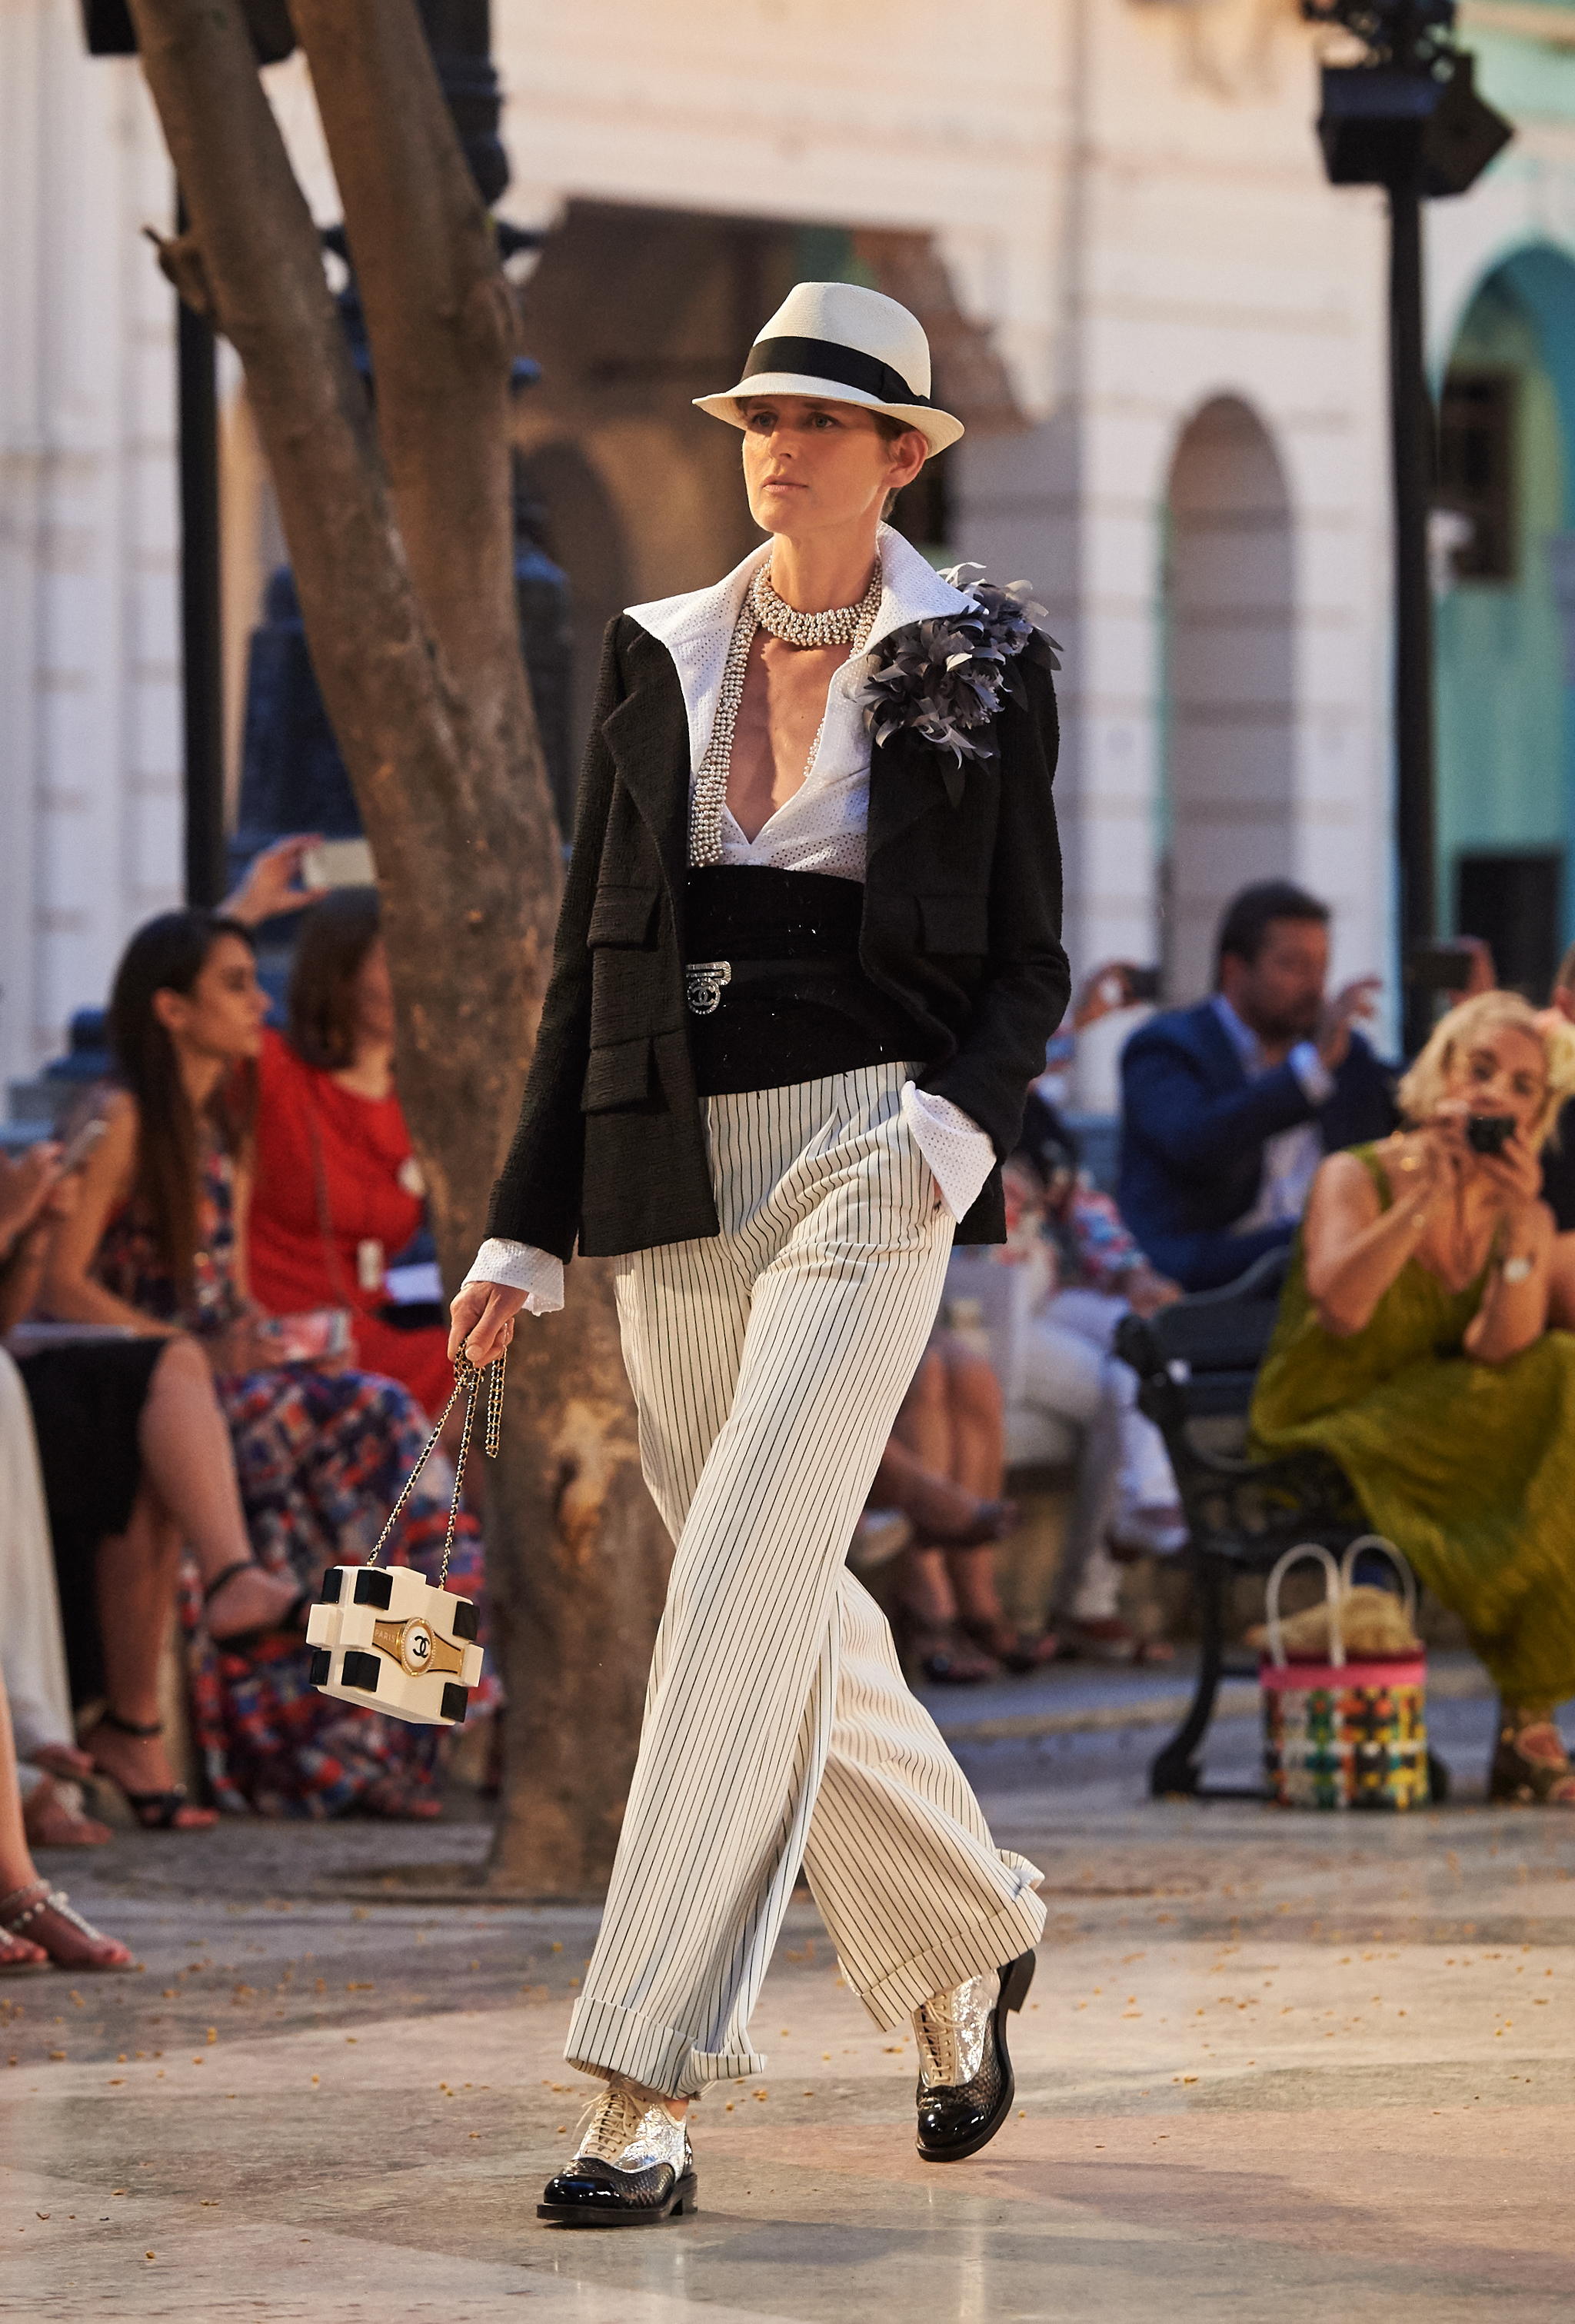 01_Cruise 2016-17 collection - Show pictures by Olivier Saillant - Look 01.jpg